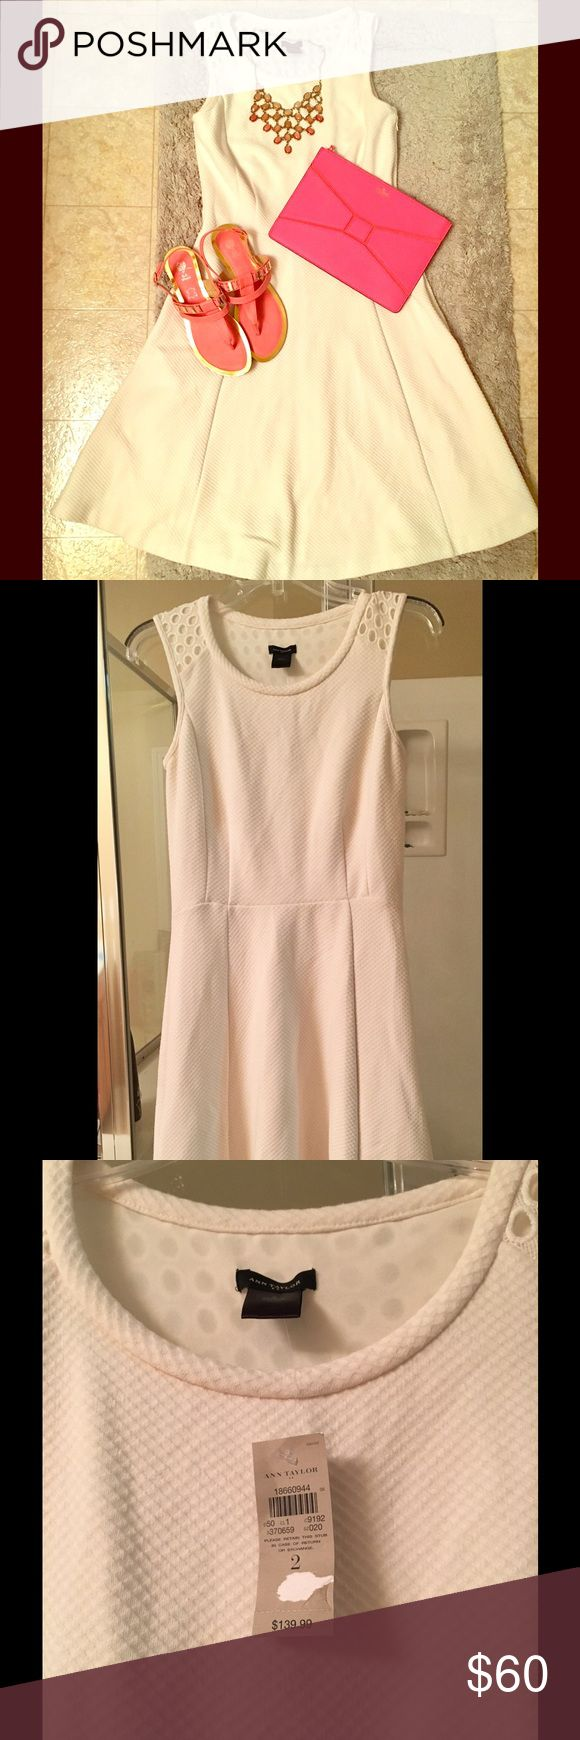 "Beautiful sleeveless Ann Taylor sundress Beautifully feminine white sleeveless sundress with eyelet detail on upper back and front shoulders. Thicker material so it is not see through like most white summer dresses can be. Great for and figure, flowy non fitted skirt. Perfect for day or evening and can be paired with cute sandals or a great pair of heels for more sophisticated look. Use pops of color to continually gave a new look. Size zipper for easy on and off. Shoulder to hem 37""…"